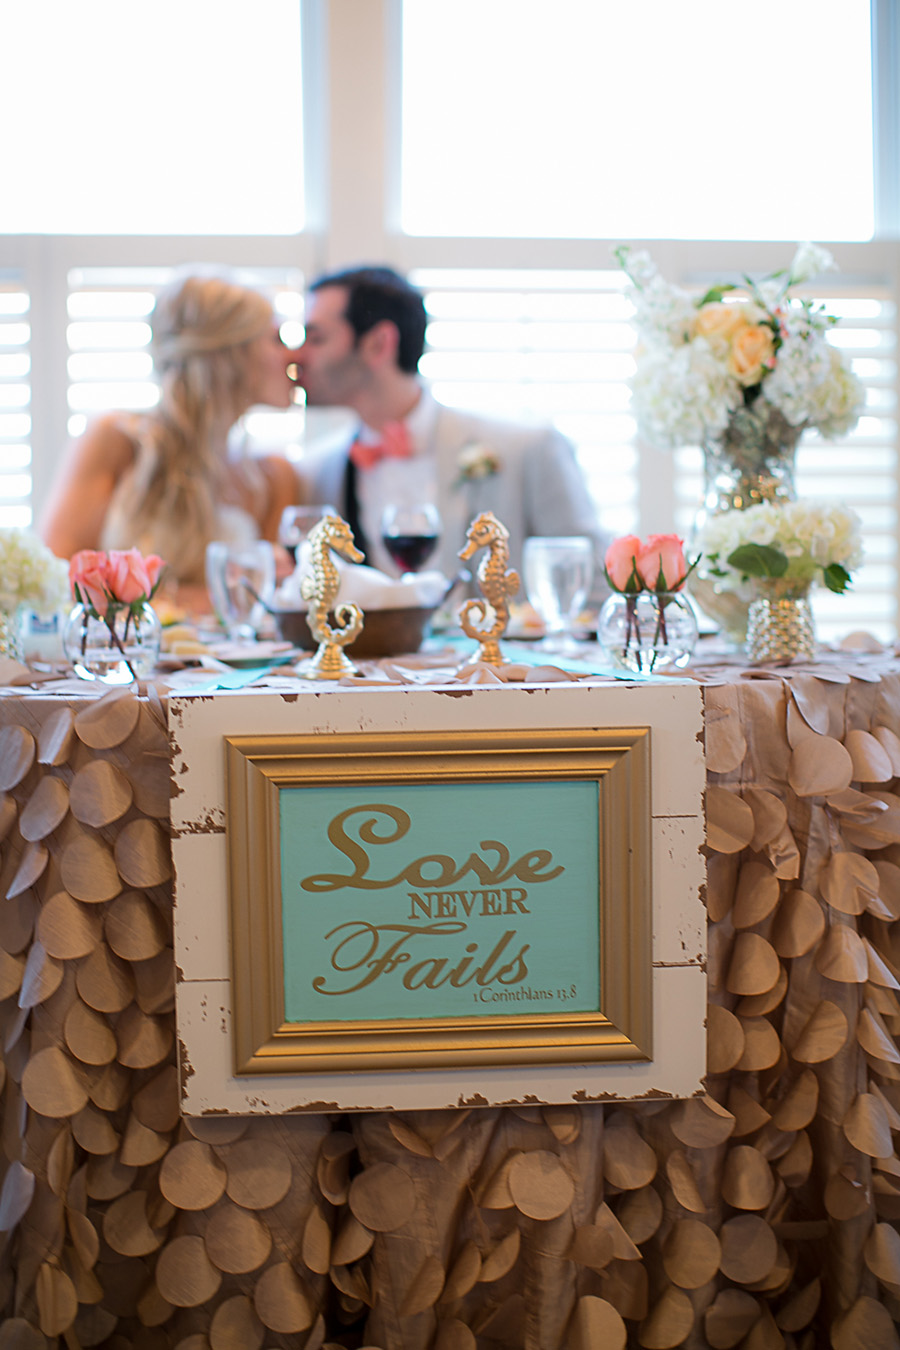 The Bride and Groom - Head Table - Bald Head Island Wedding - Photo by Eric Boneske